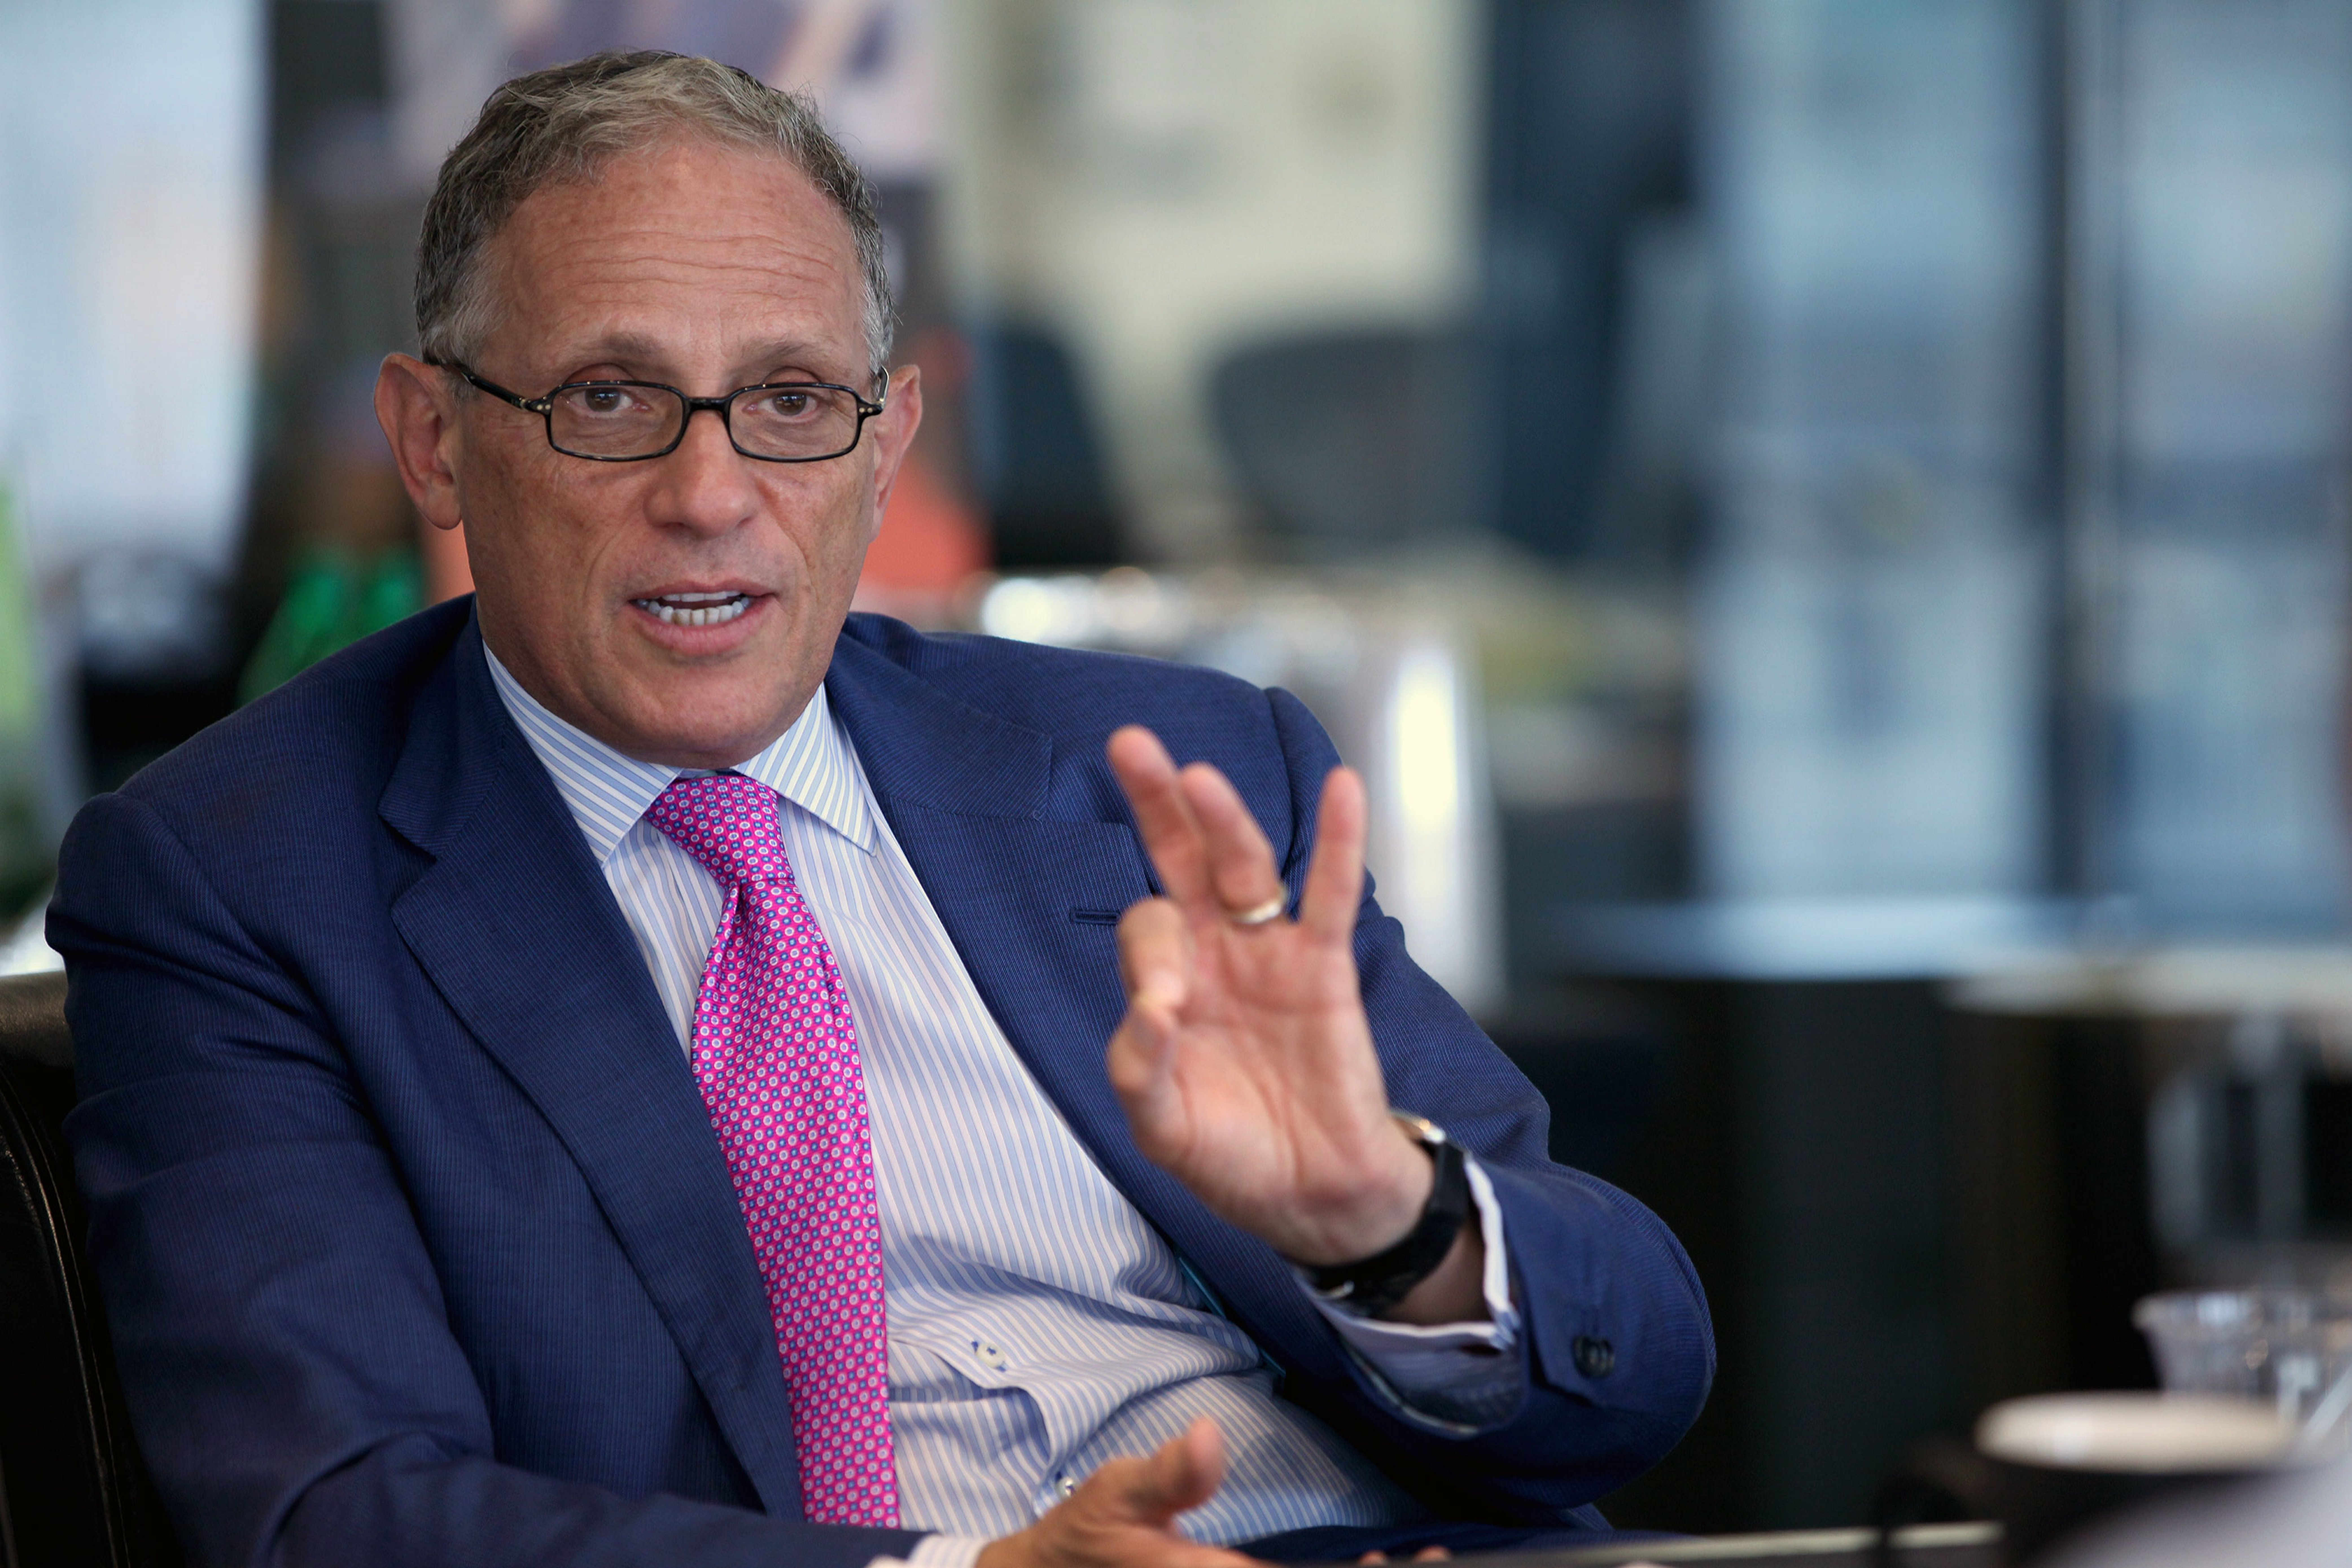 Fred Hochberg, chairman and president of the Export-Import Bank, is scheduled to participate in a manufacturing forum at Jamestown Community College on Thursday.